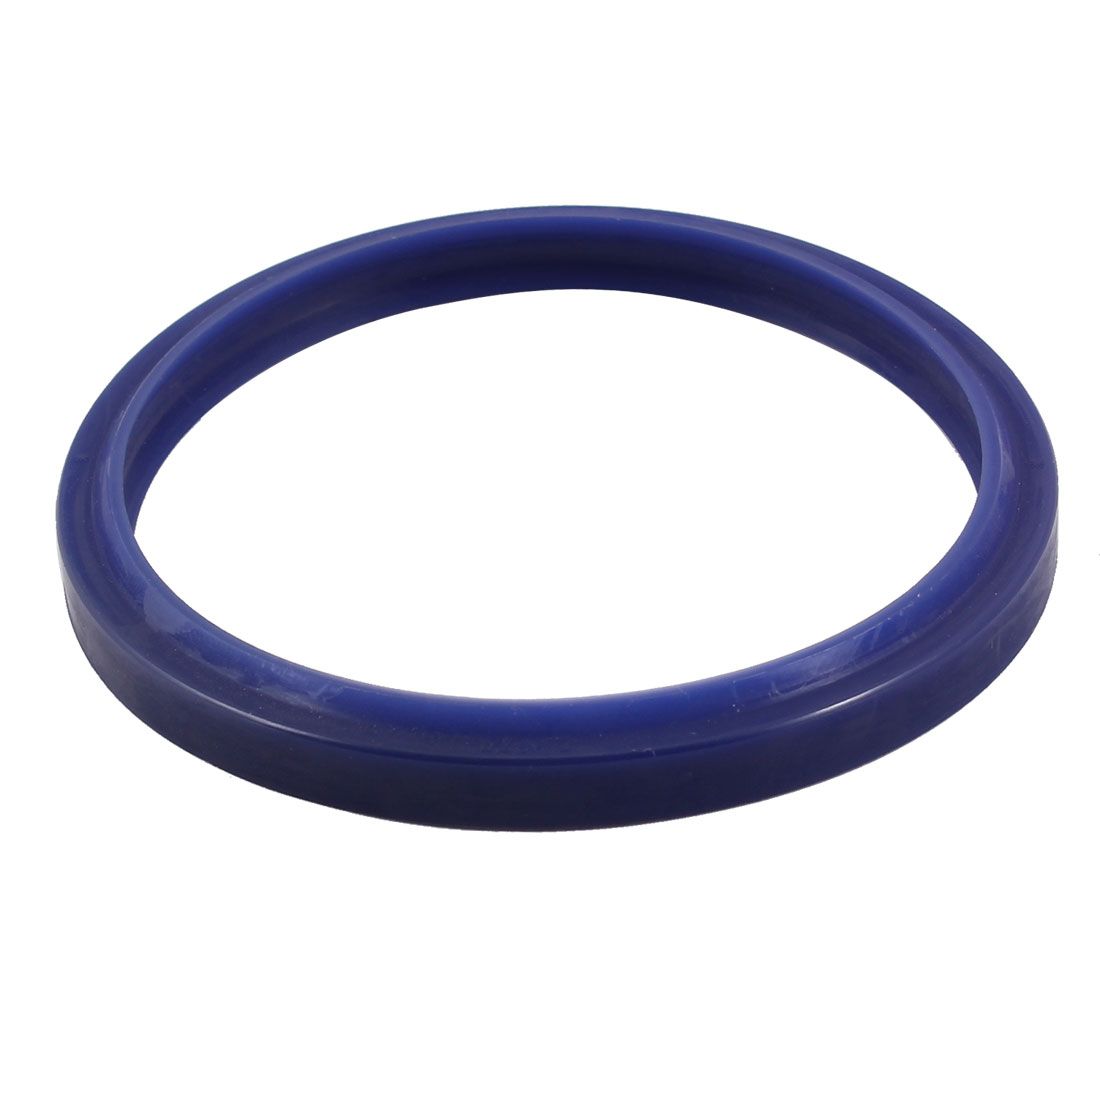 Hydraulic Equipments 87mm x 75mm x 6mm Oil Seal Rubber Gasket Blue